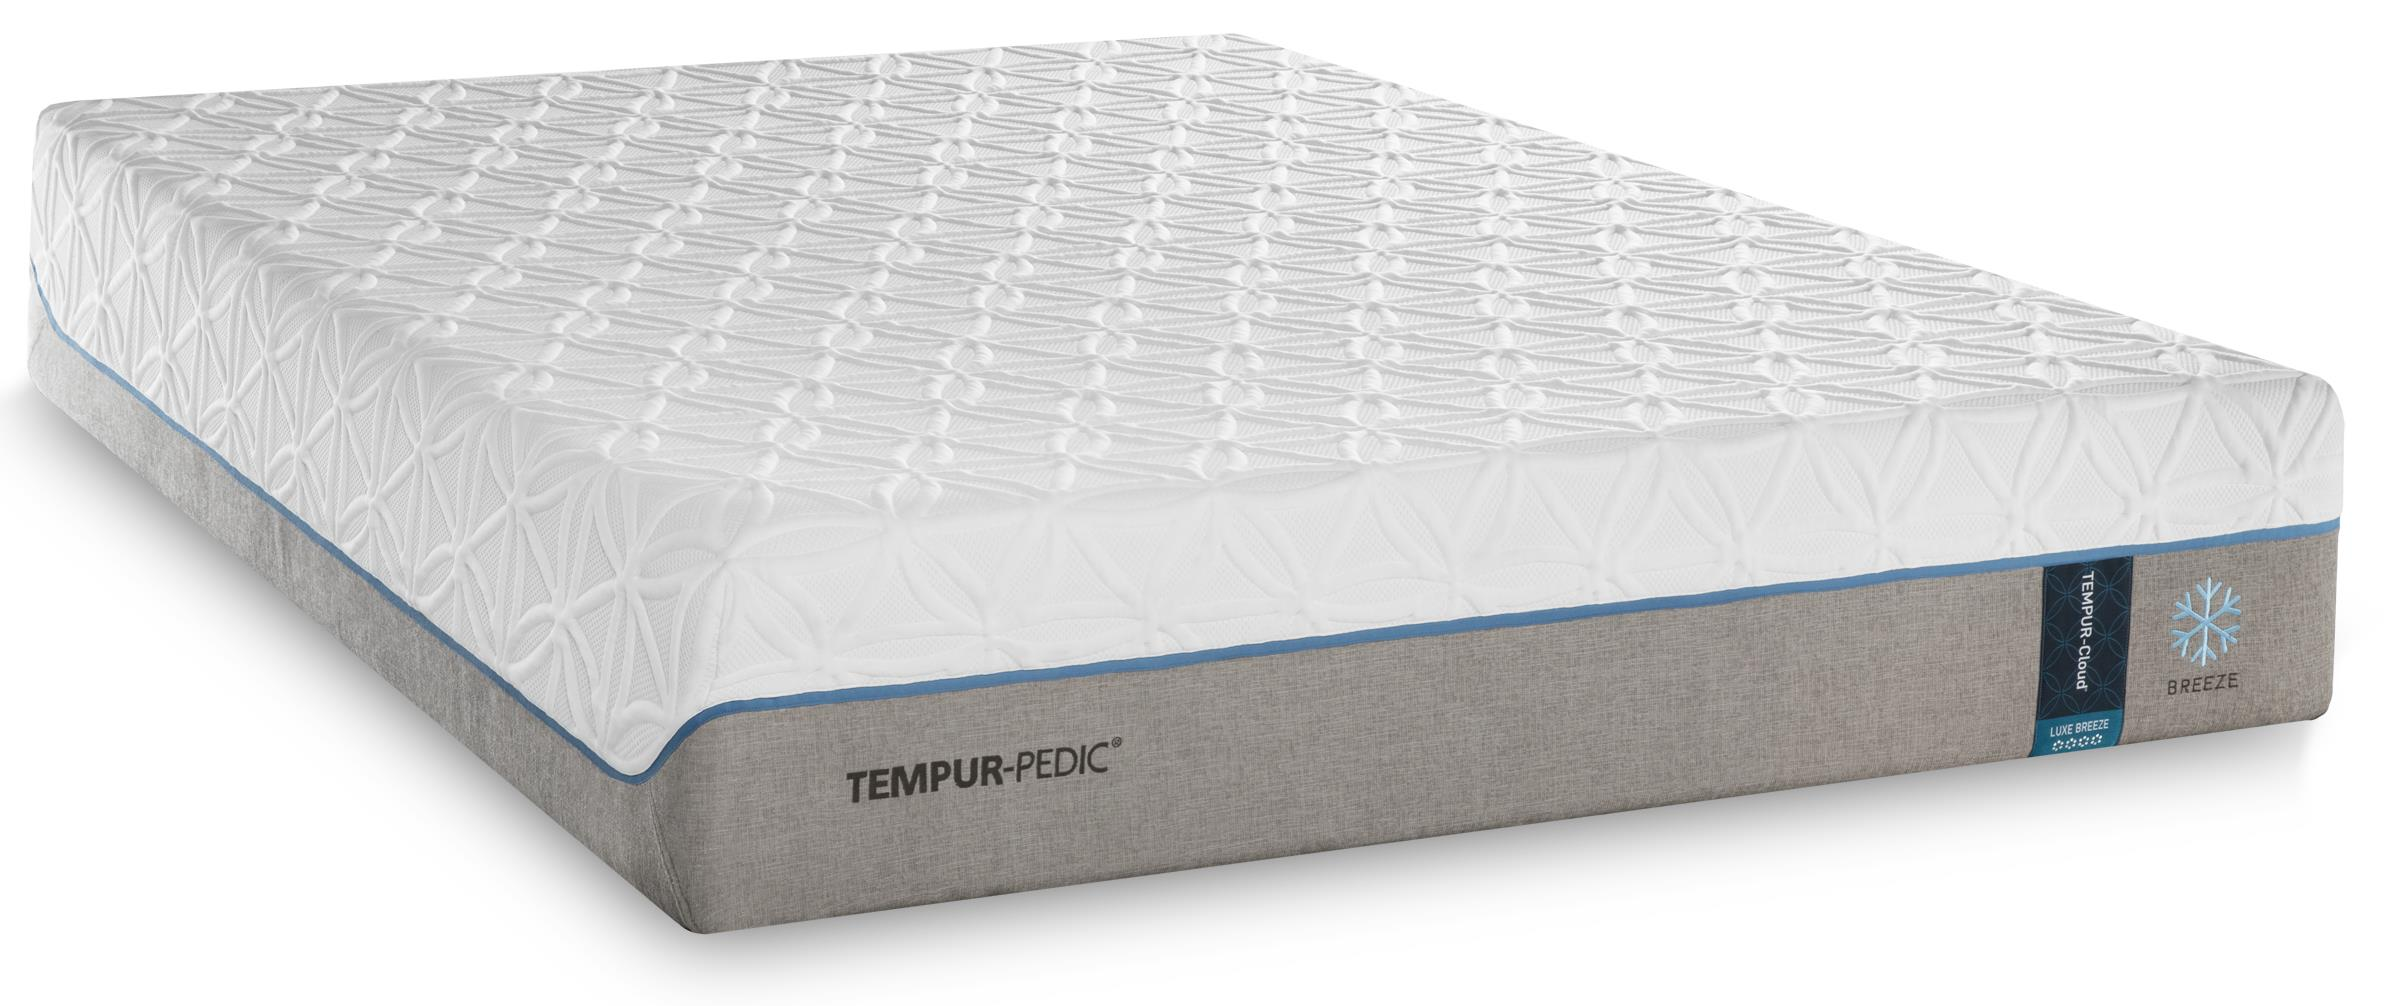 Tempur Pedic TEMPUR Cloud Luxe Breeze 2 Split King Ultra Soft